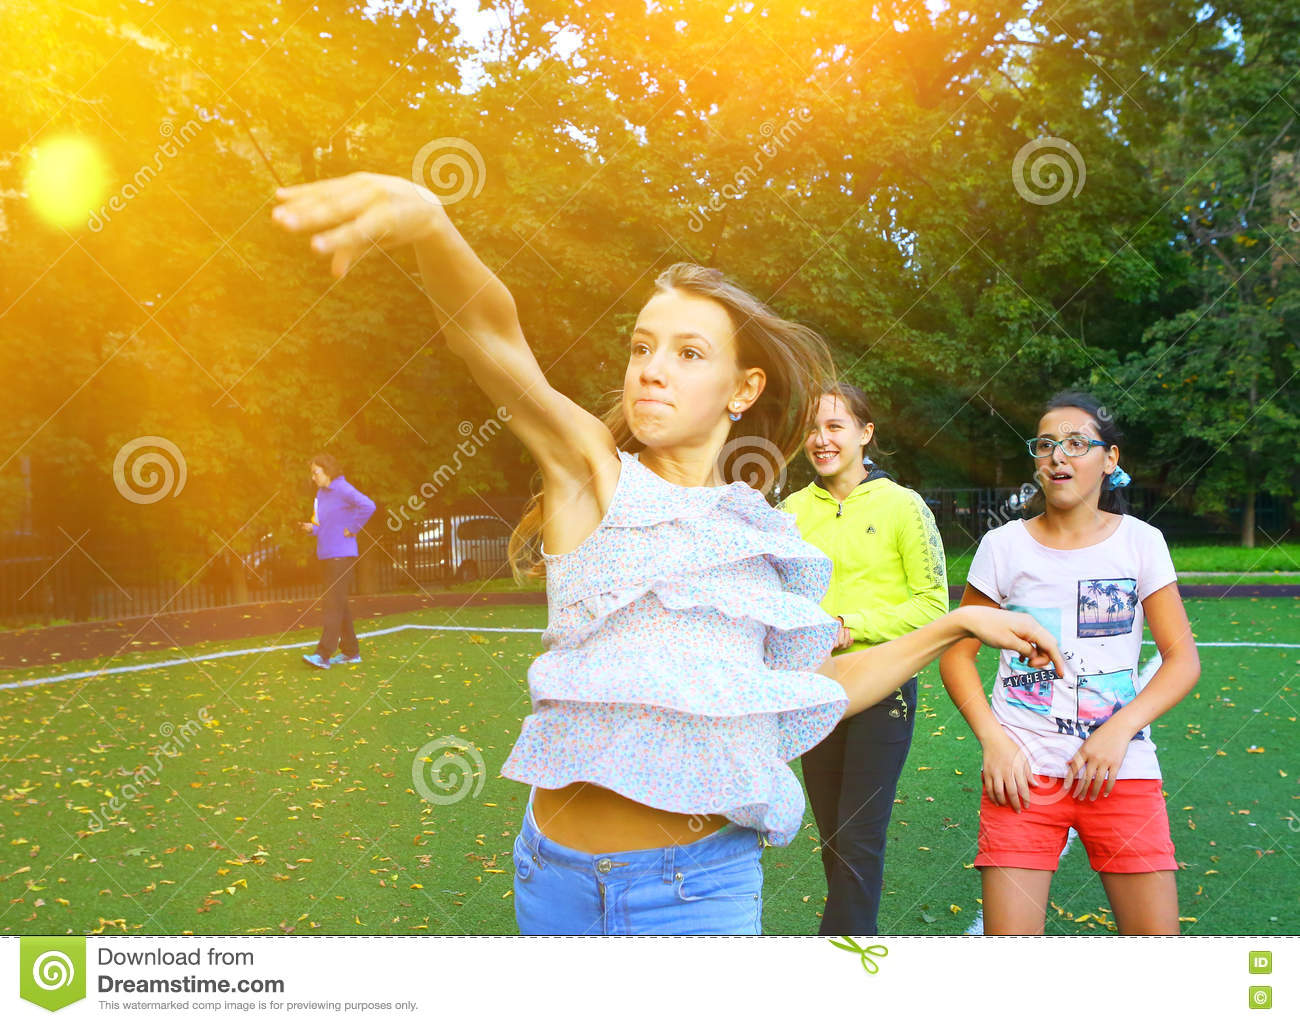 Kids on outdoor sport throwing ball competition